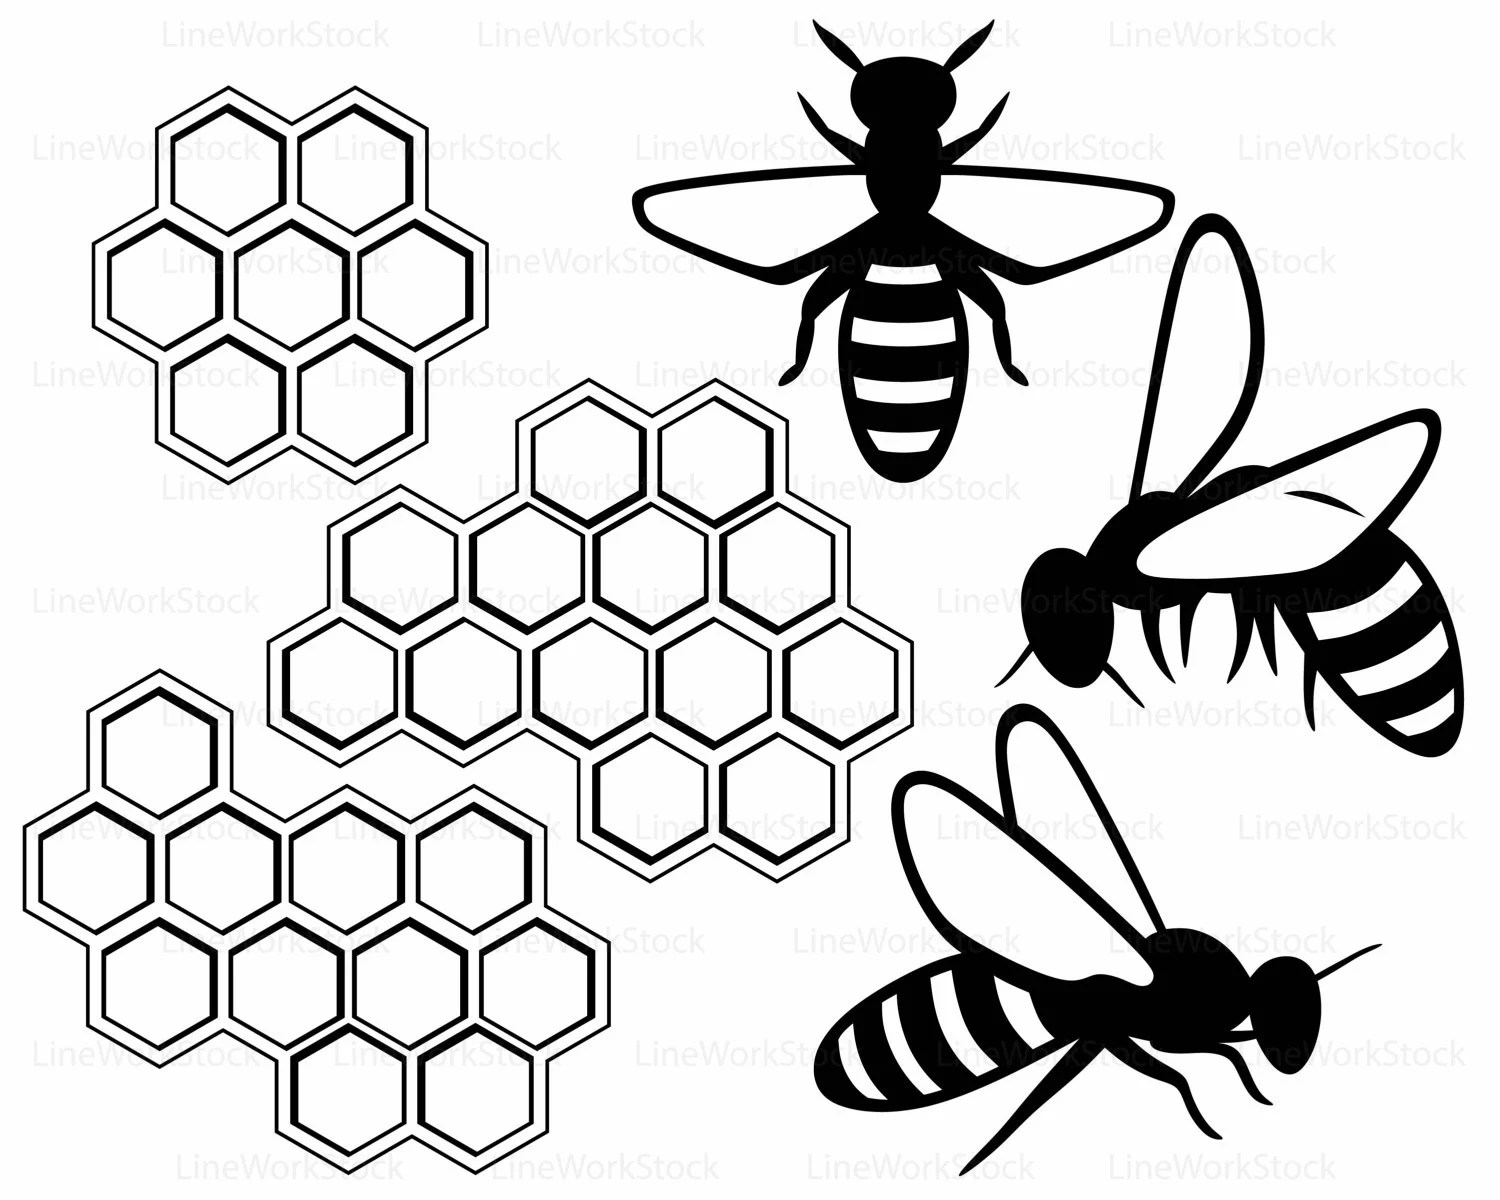 Bees Svg Bees Knees Clipart Honey Svg Honeycomb Silhouette